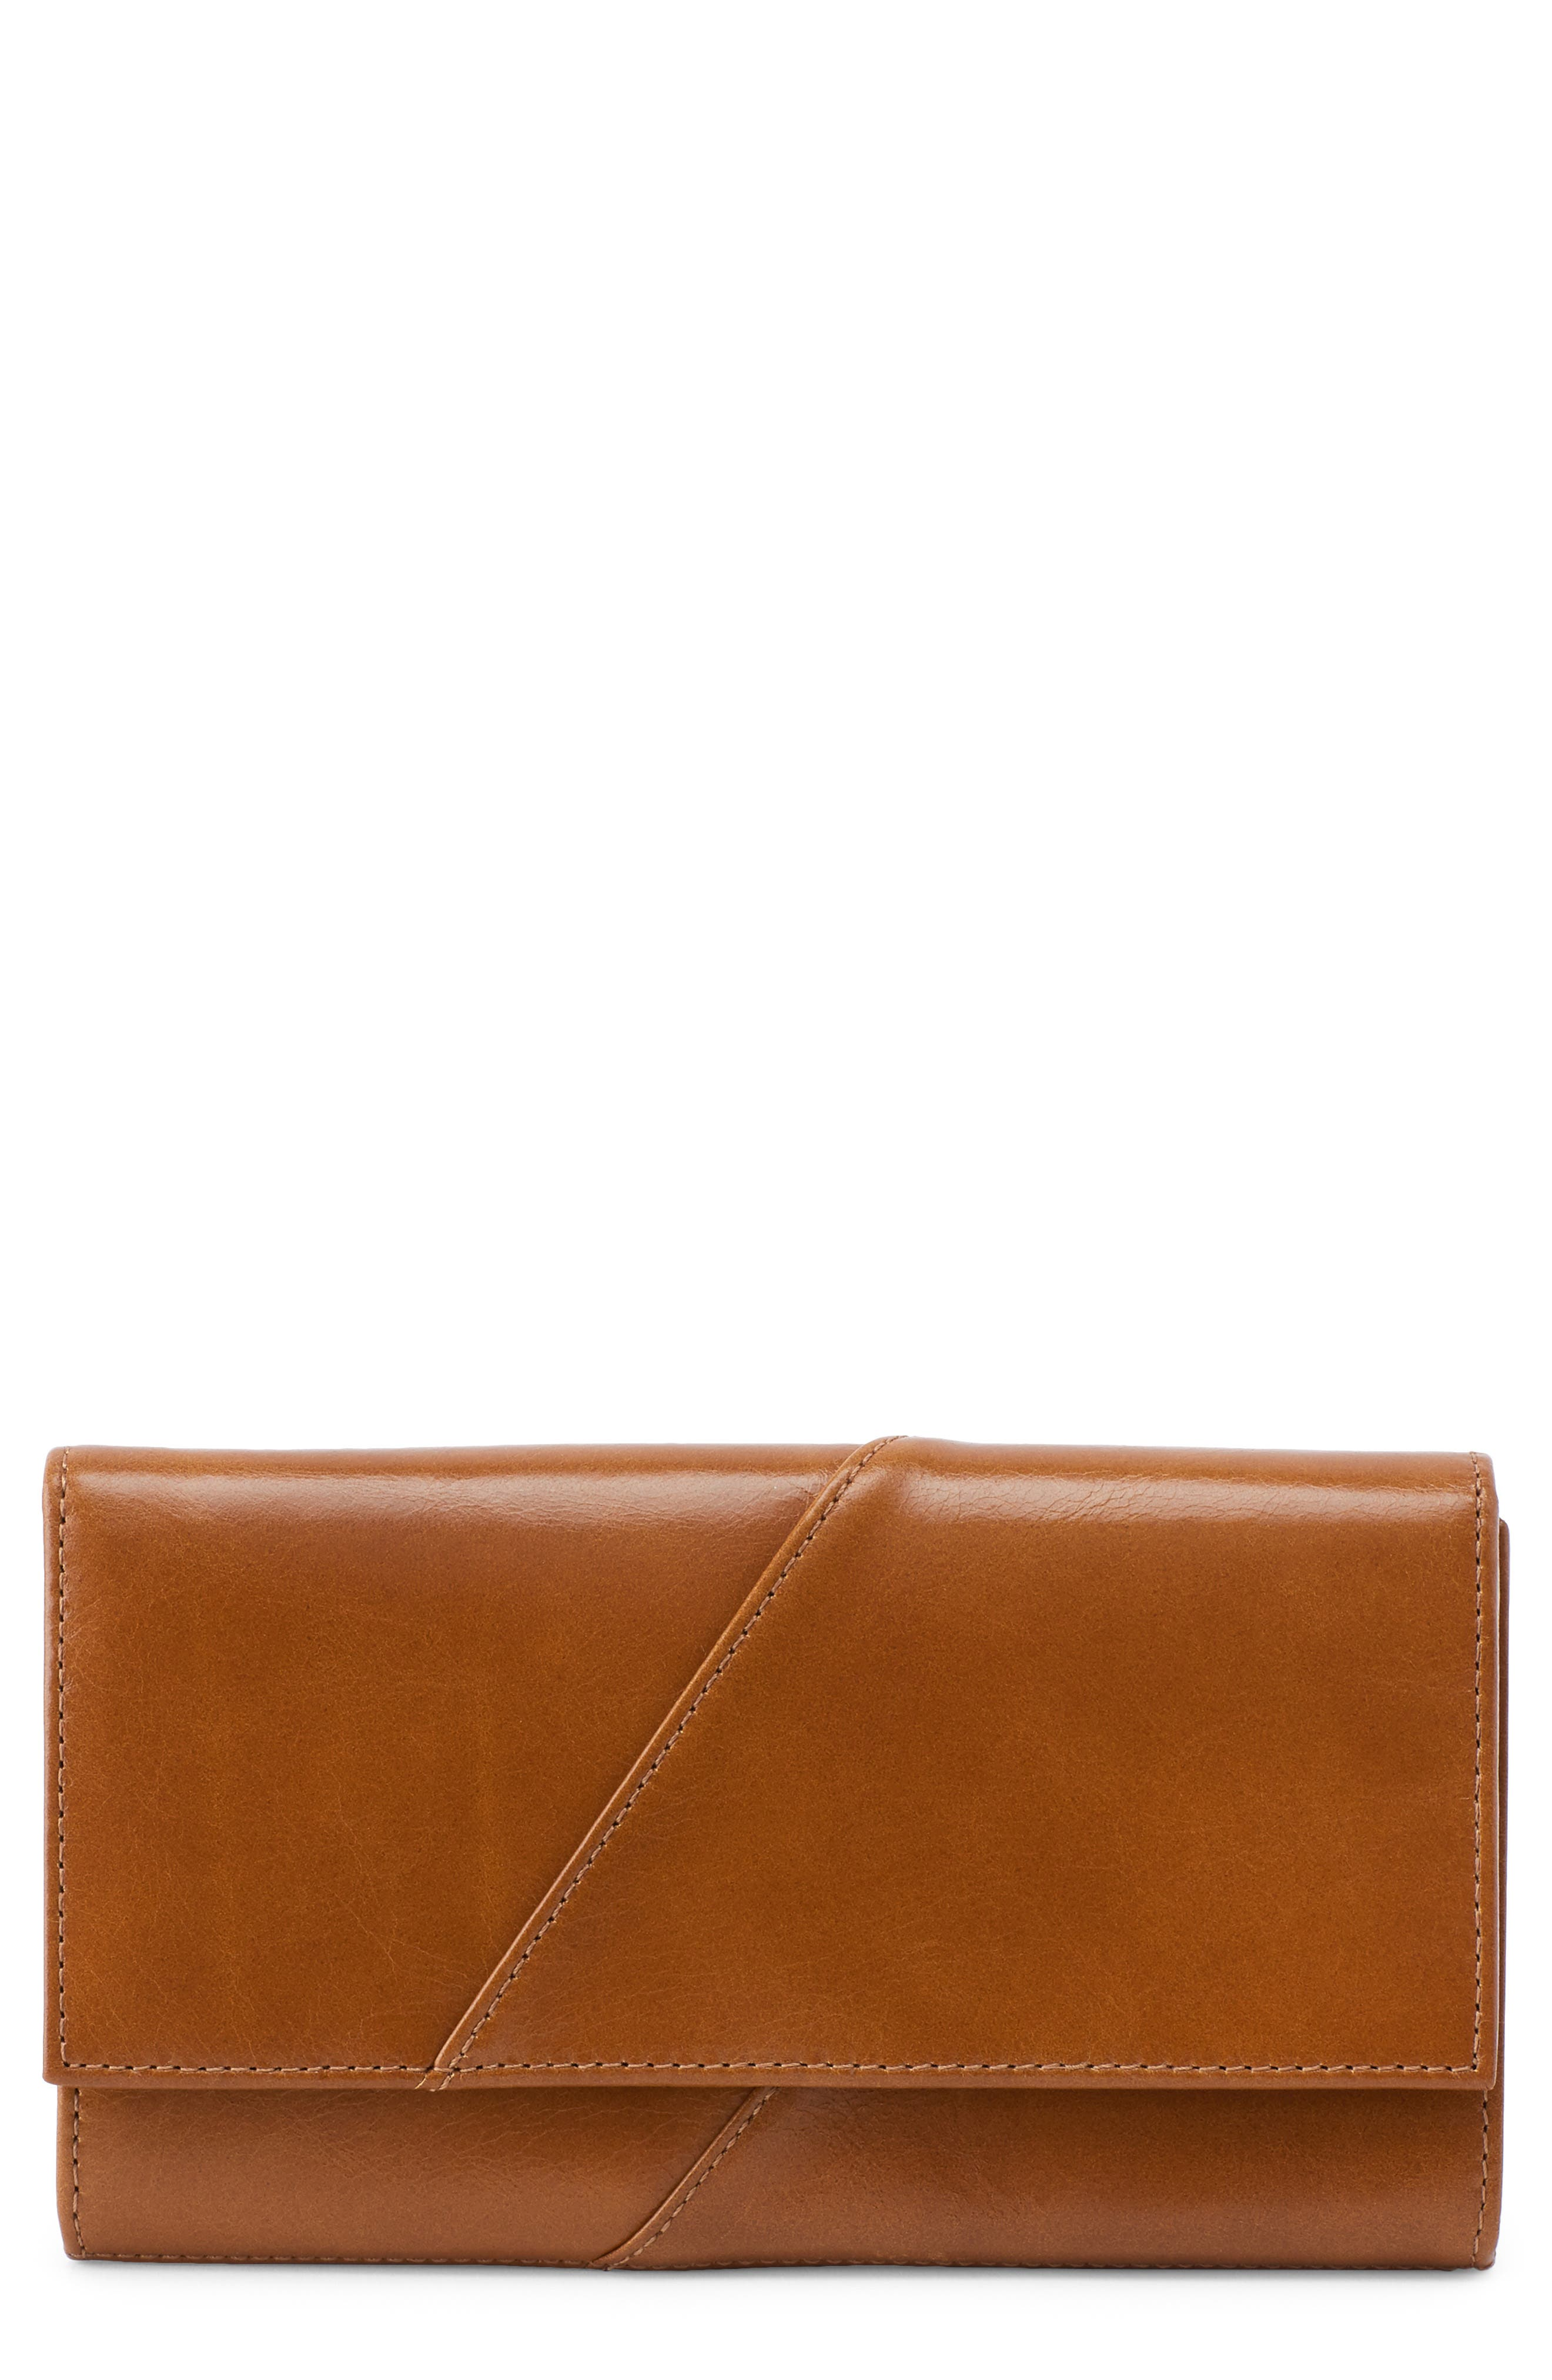 Charter Leather Wallet